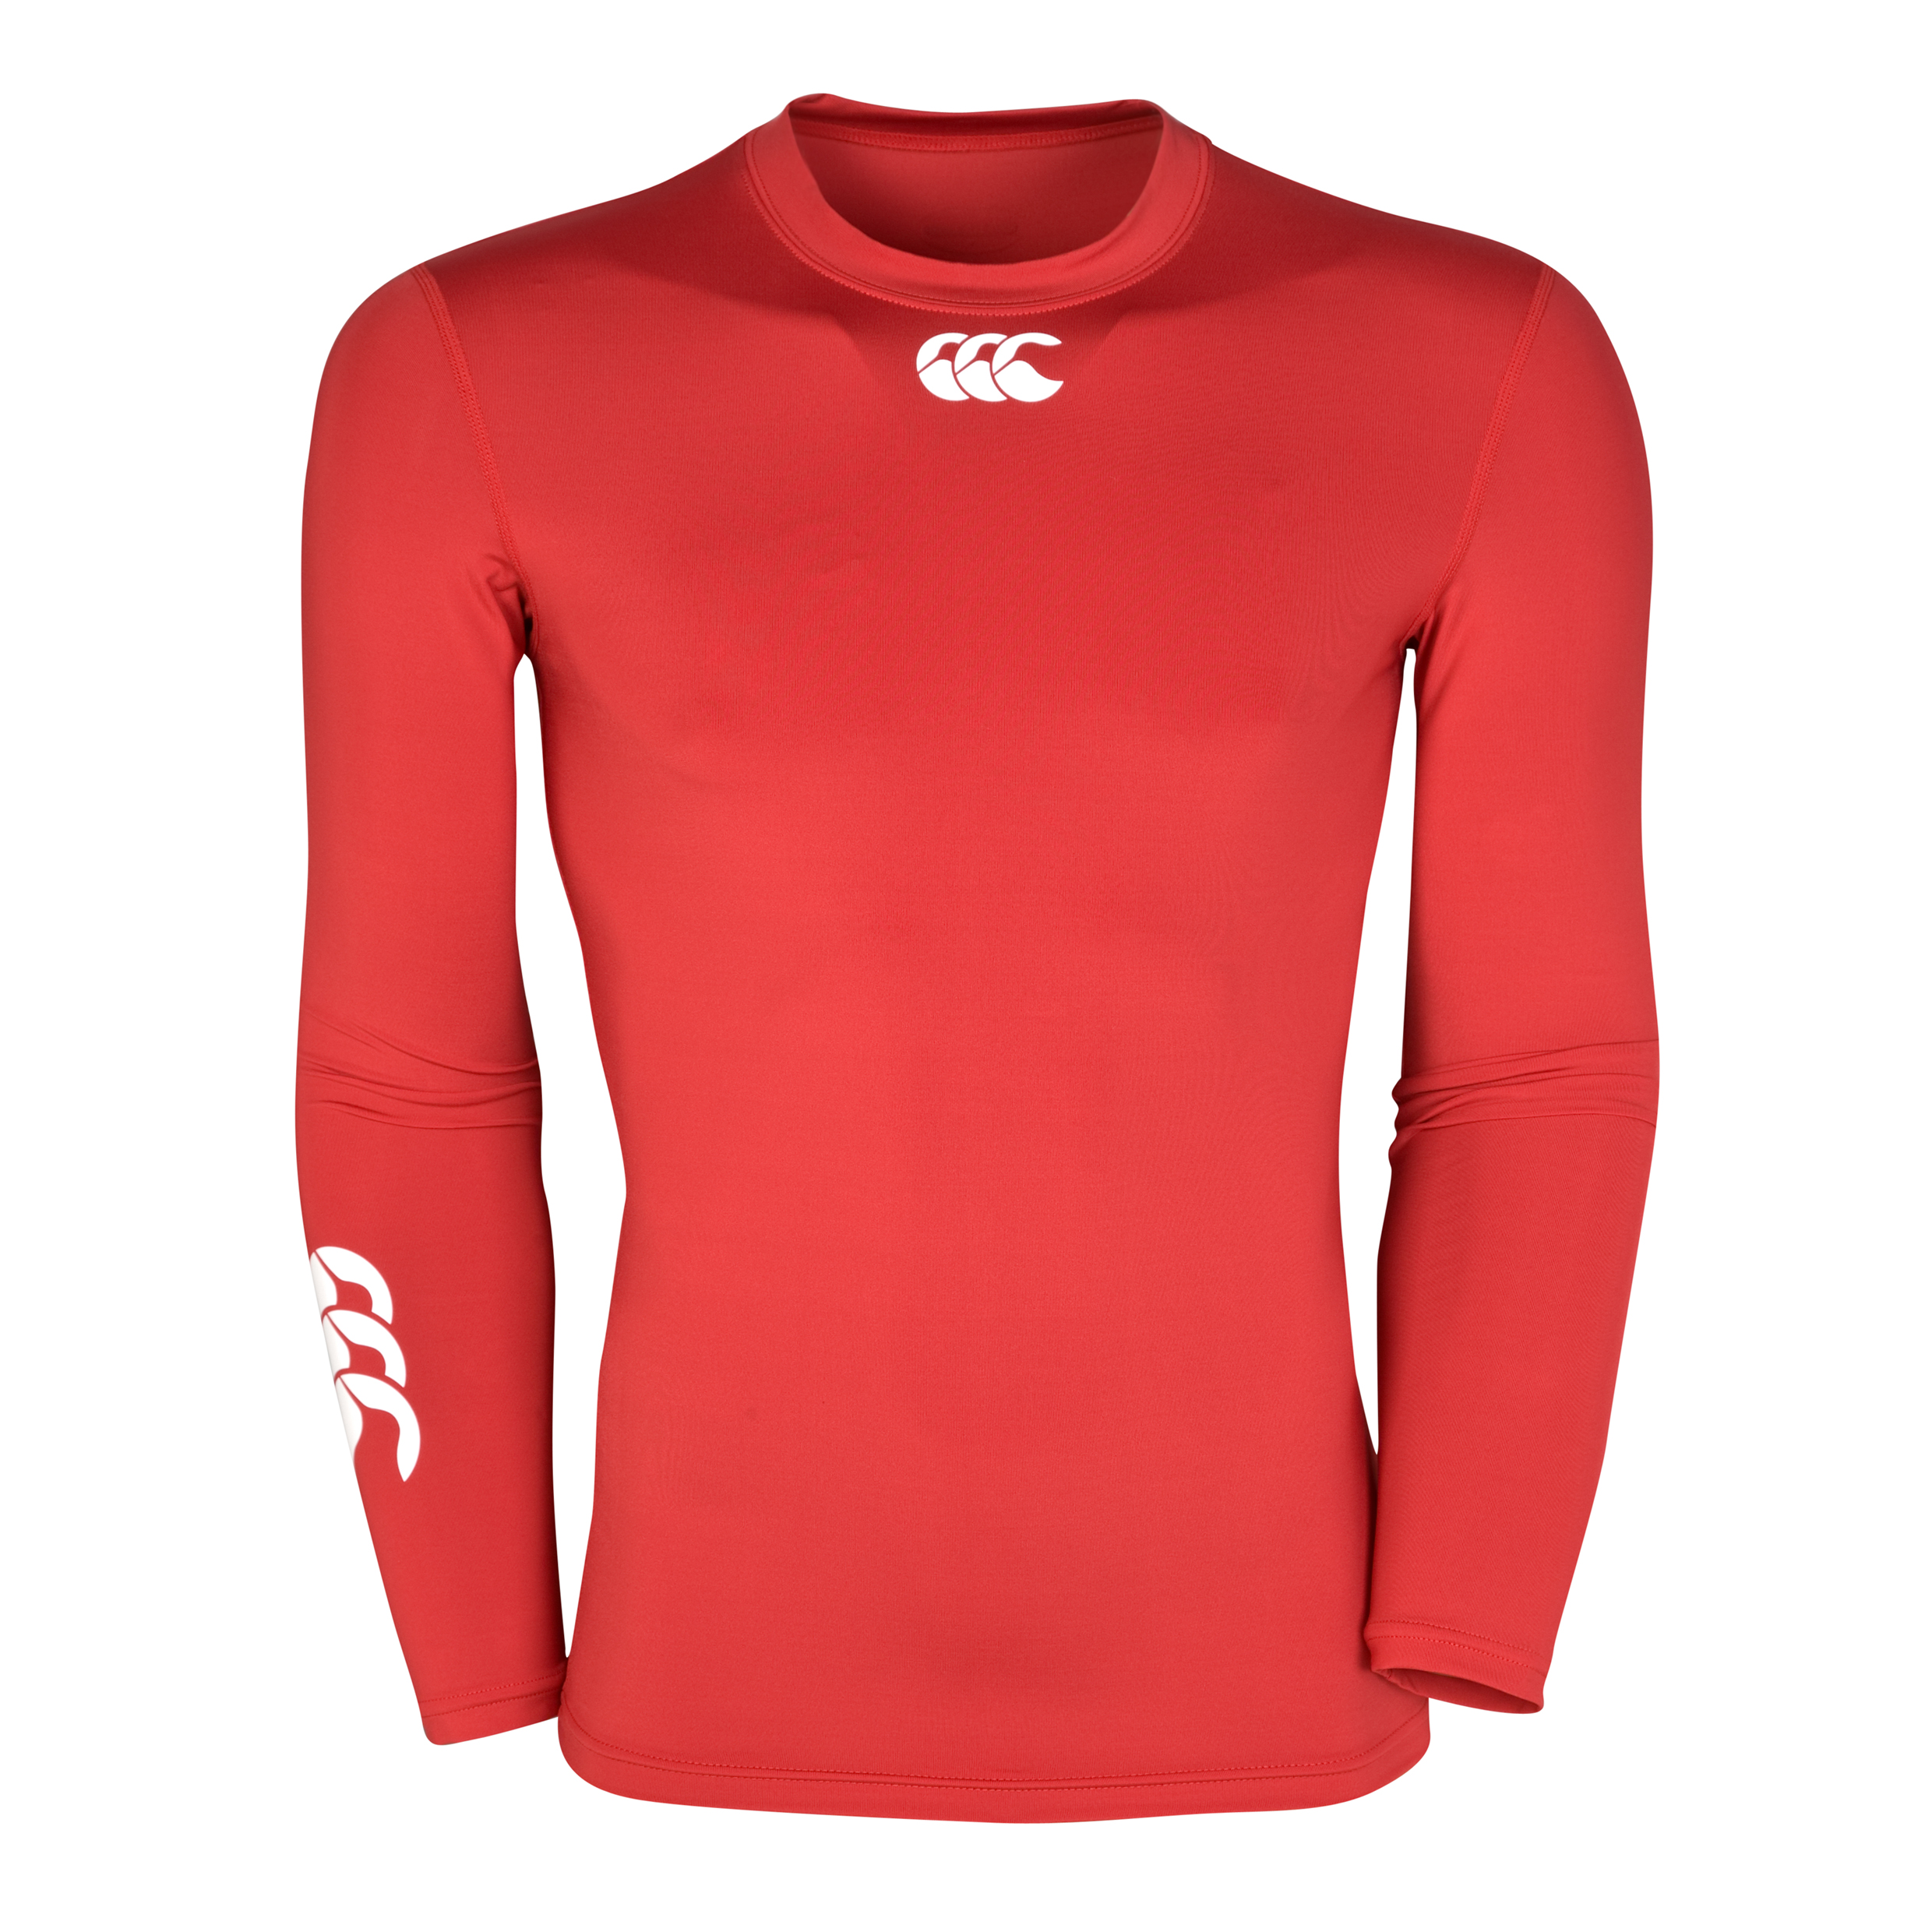 Canterbury Hot Long Sleeve Baselayer Top - Red